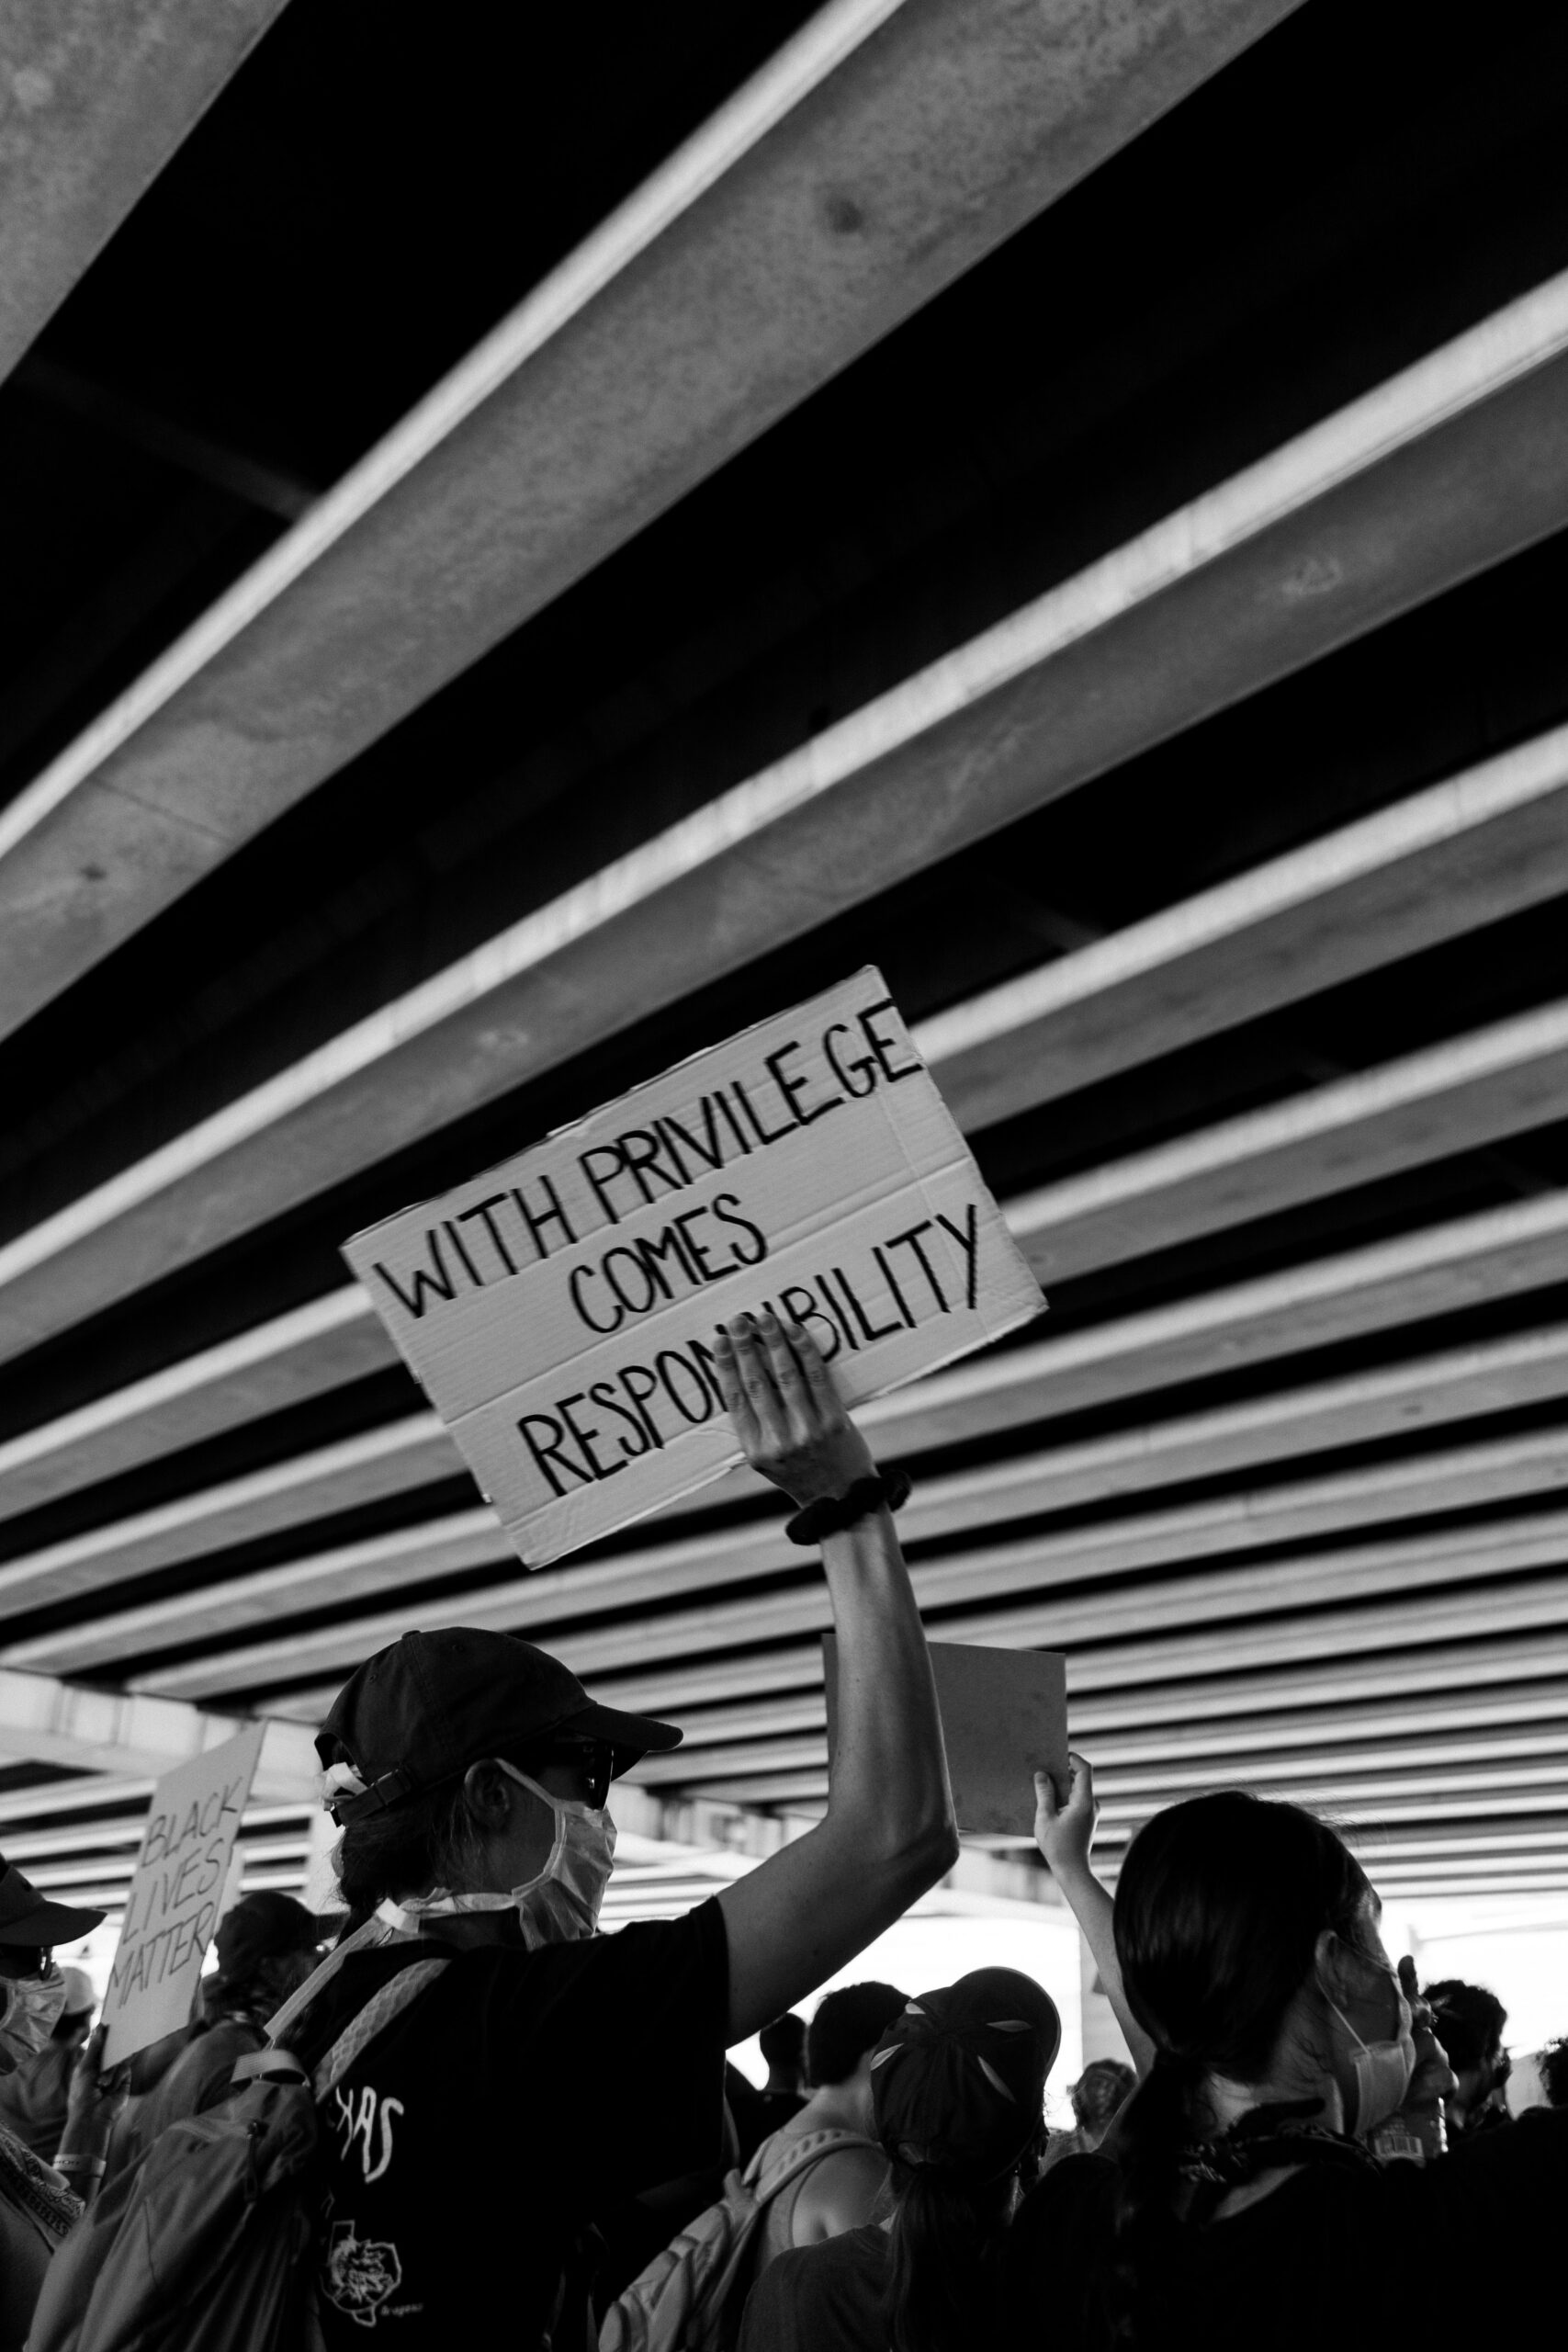 Protestor holding sign reading